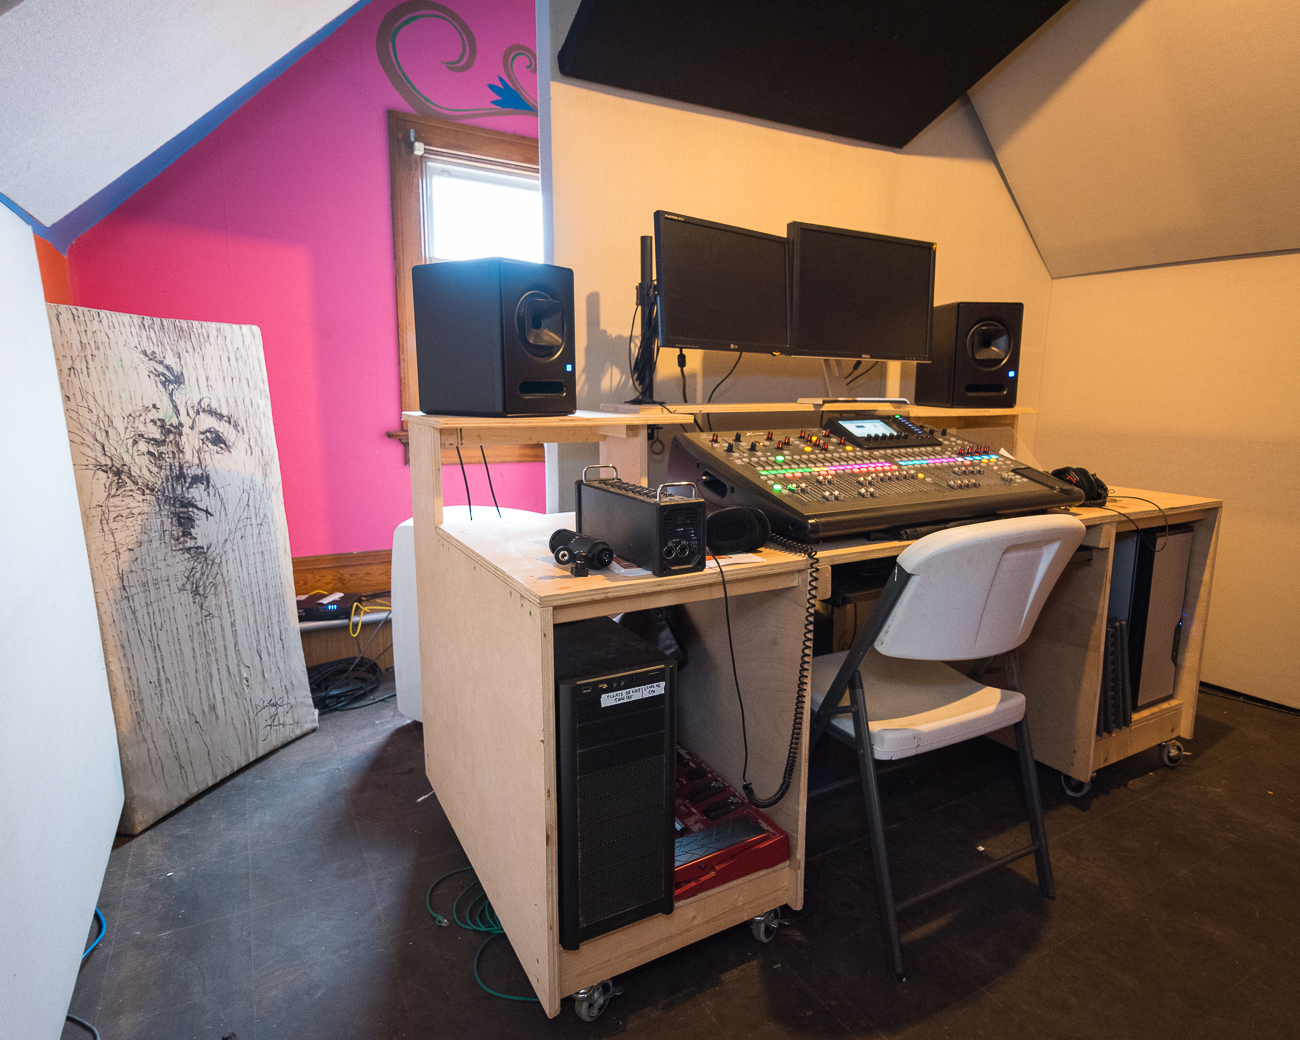 The Mix Down Room is where raw audio recordings from the live music shows in the brewery's taproom are mixed down and mastered. Once editing is complete, the music is cataloged and archived for use on Radio Artifact airwaves. / Image: Phil Armstrong, Cincinnati Refined // Published: 1.15.18<p></p>